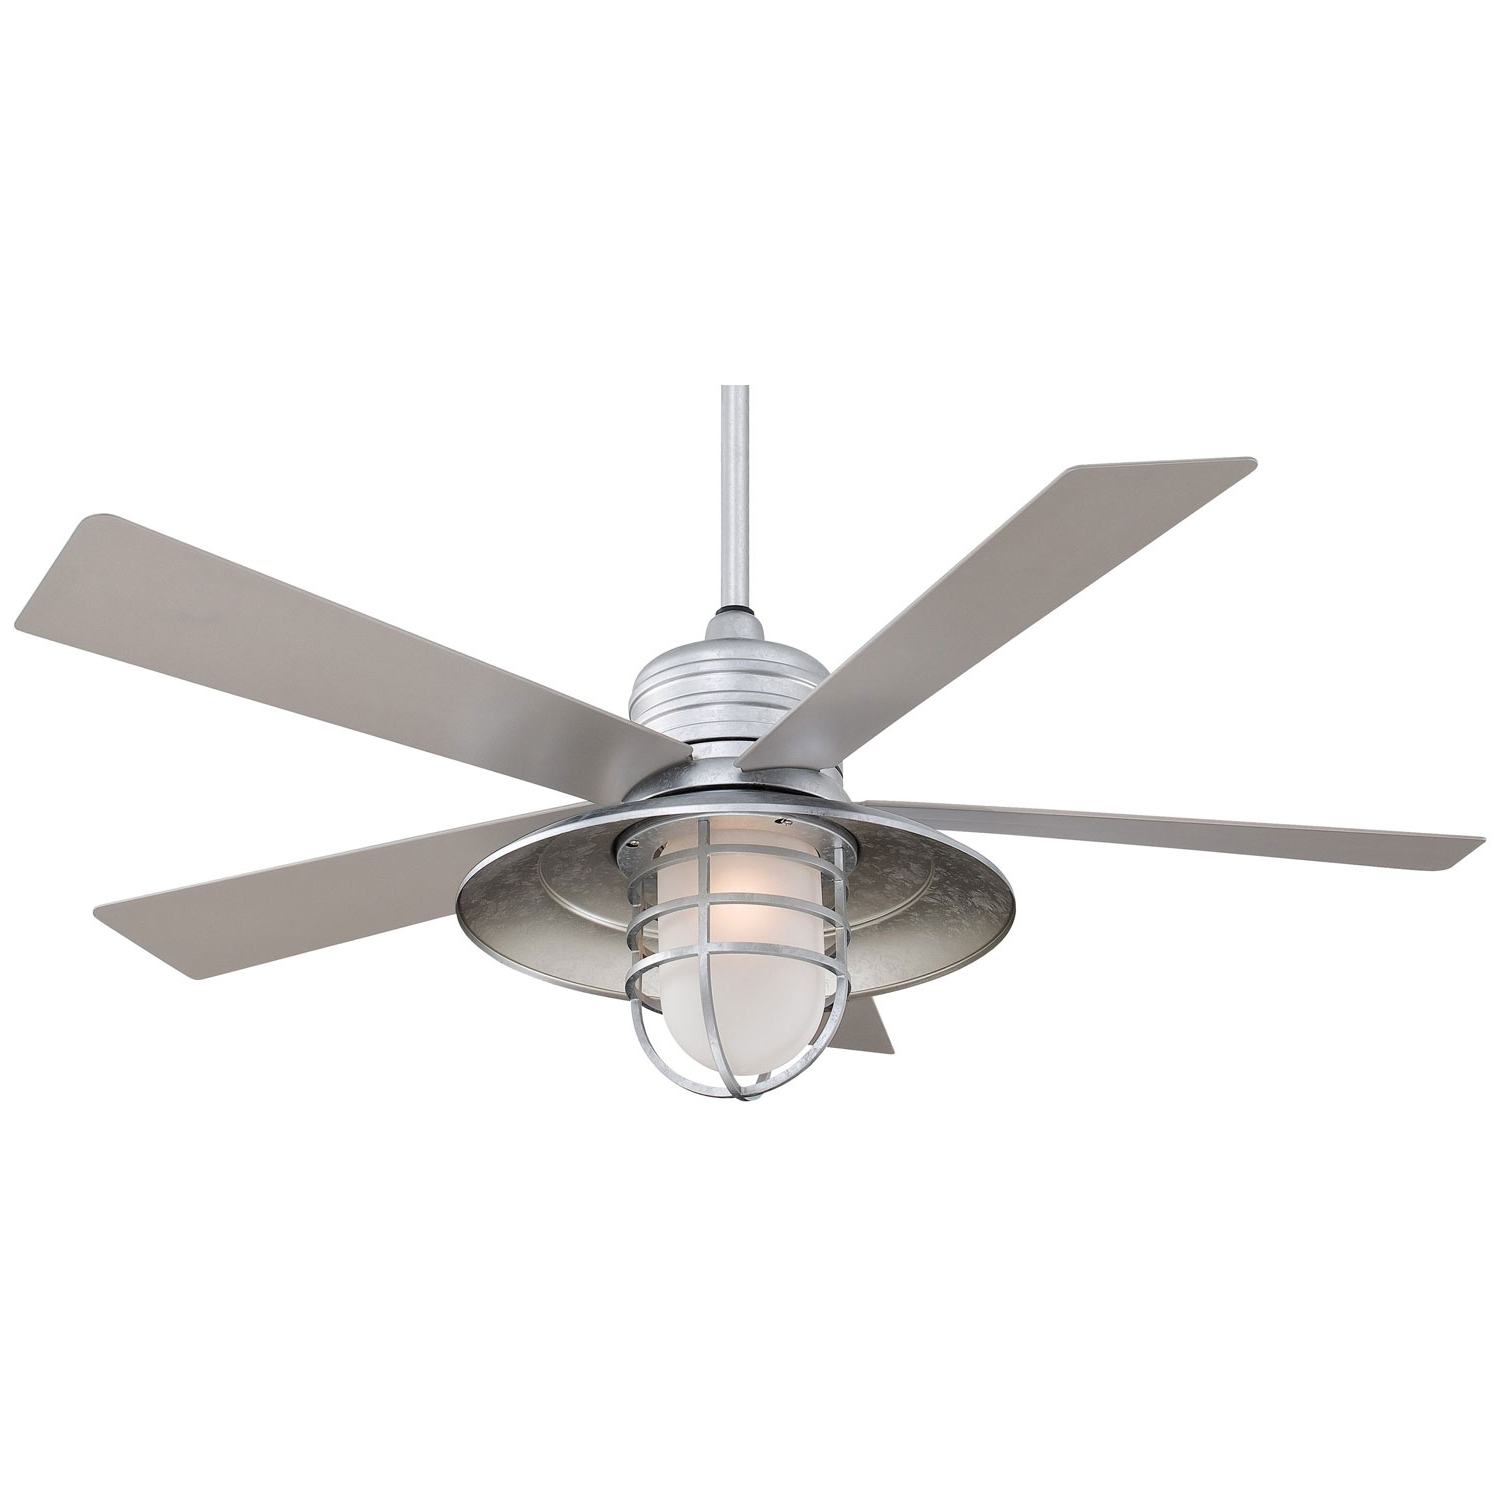 Minka Aire Rainman Galvanized 54 Inch Blade Indoor/outdoor Ceiling Intended For Trendy Outdoor Ceiling Fans With Galvanized Blades (View 6 of 20)